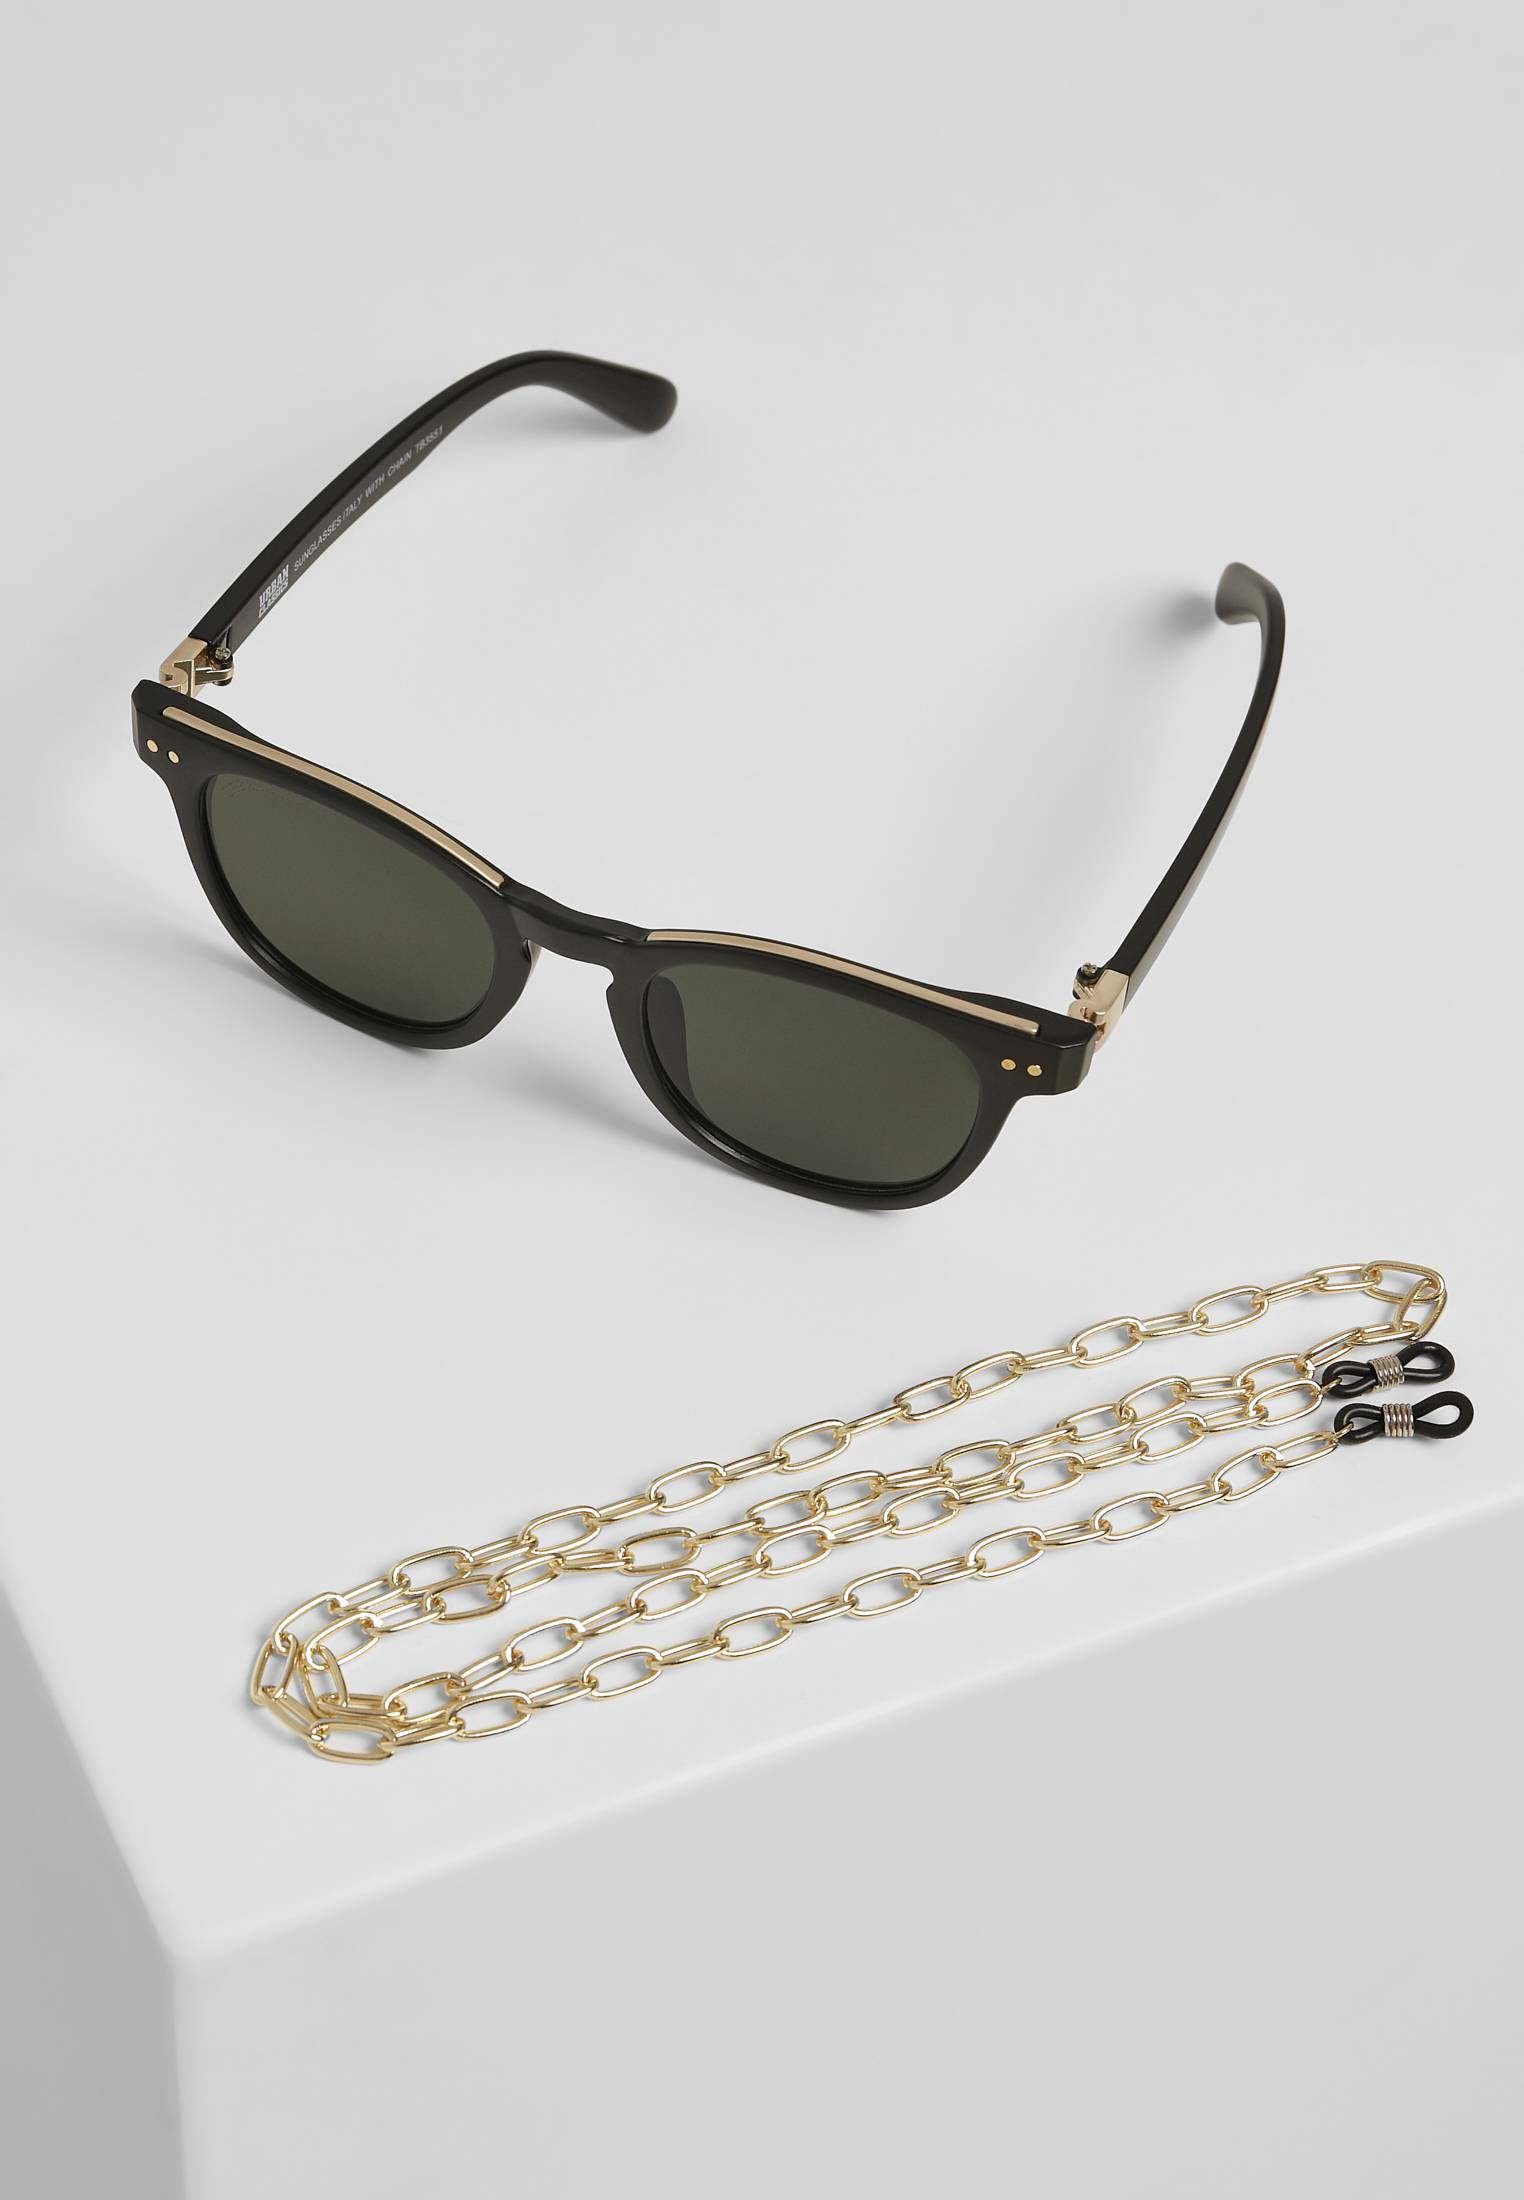 Urban Classics Sunglasses Italy with chain black/gold/gold - One Size